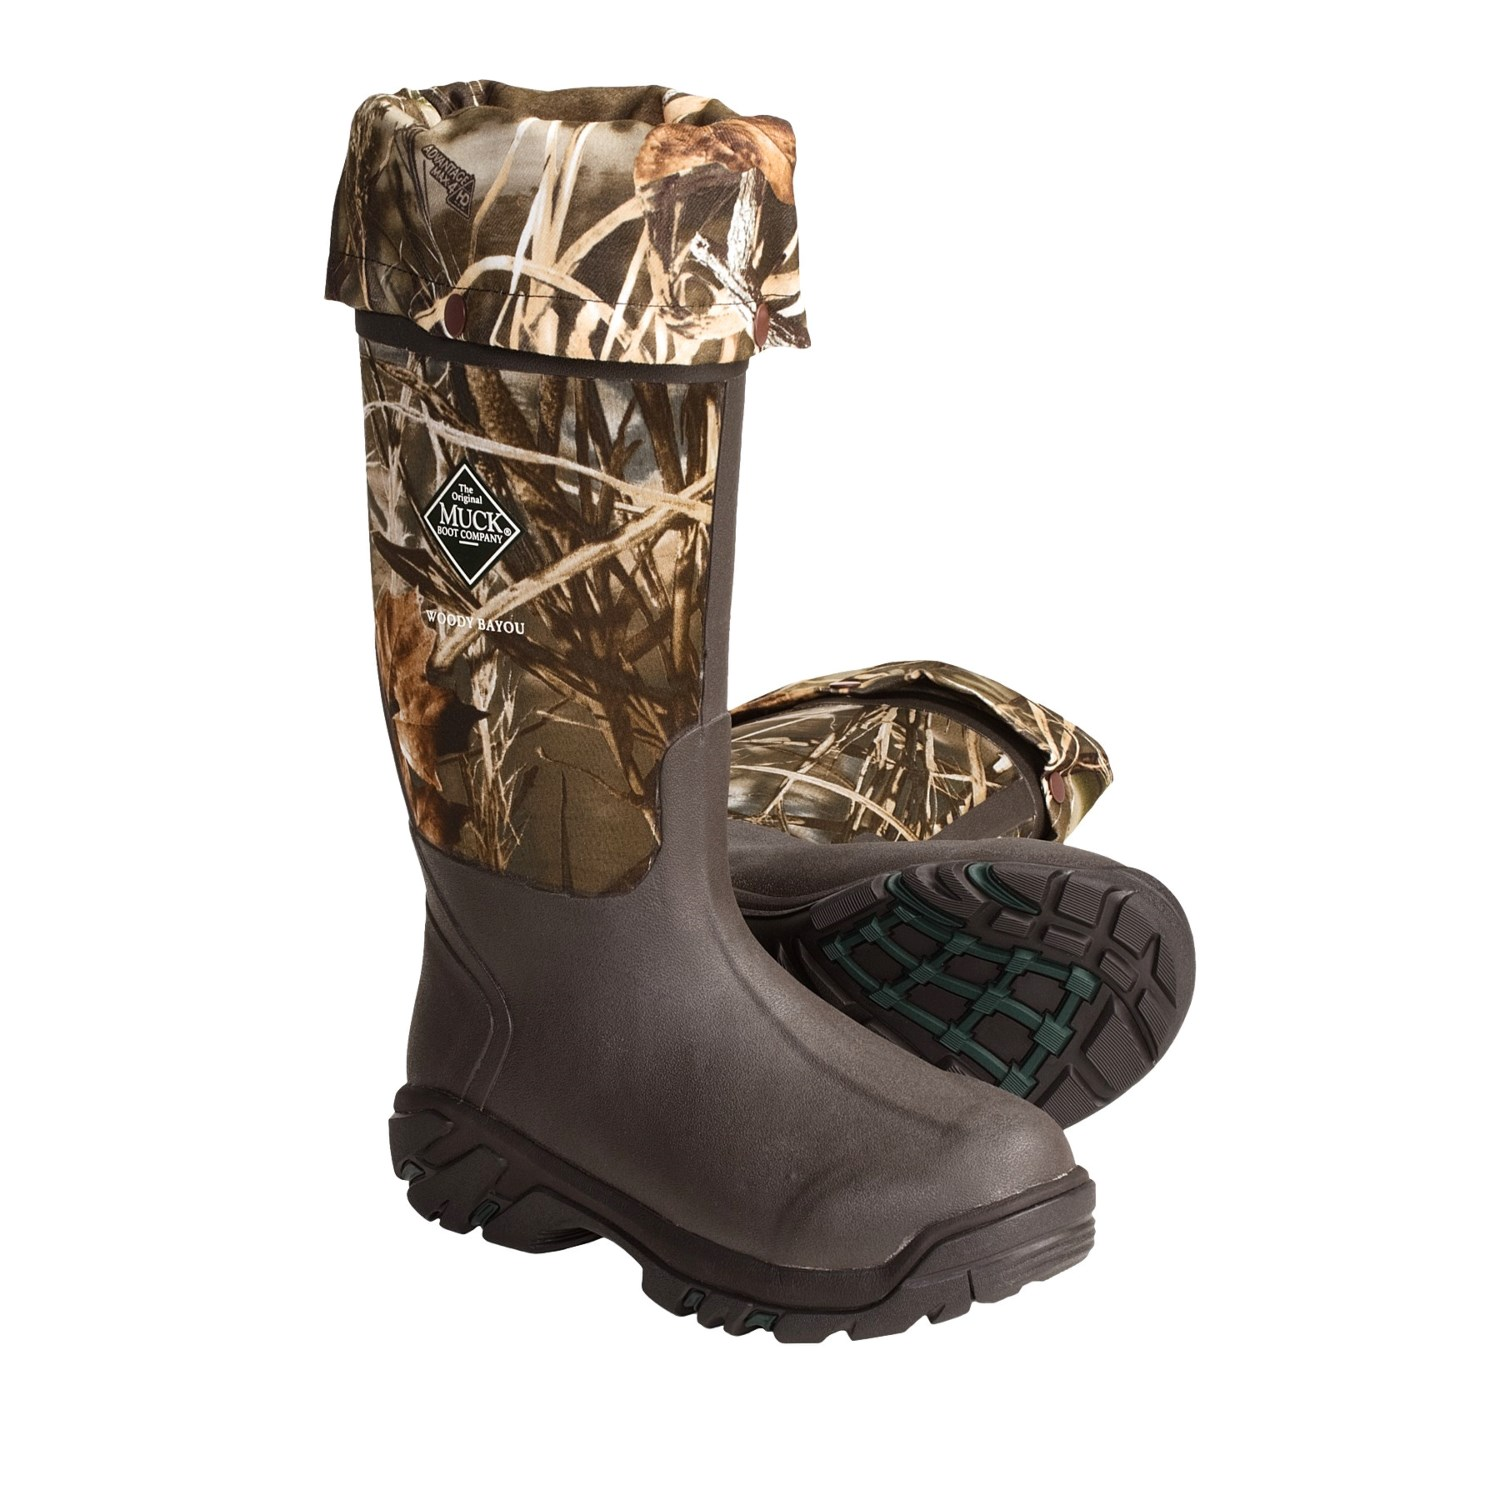 Insulated Muck Boots Womens - All About Boots